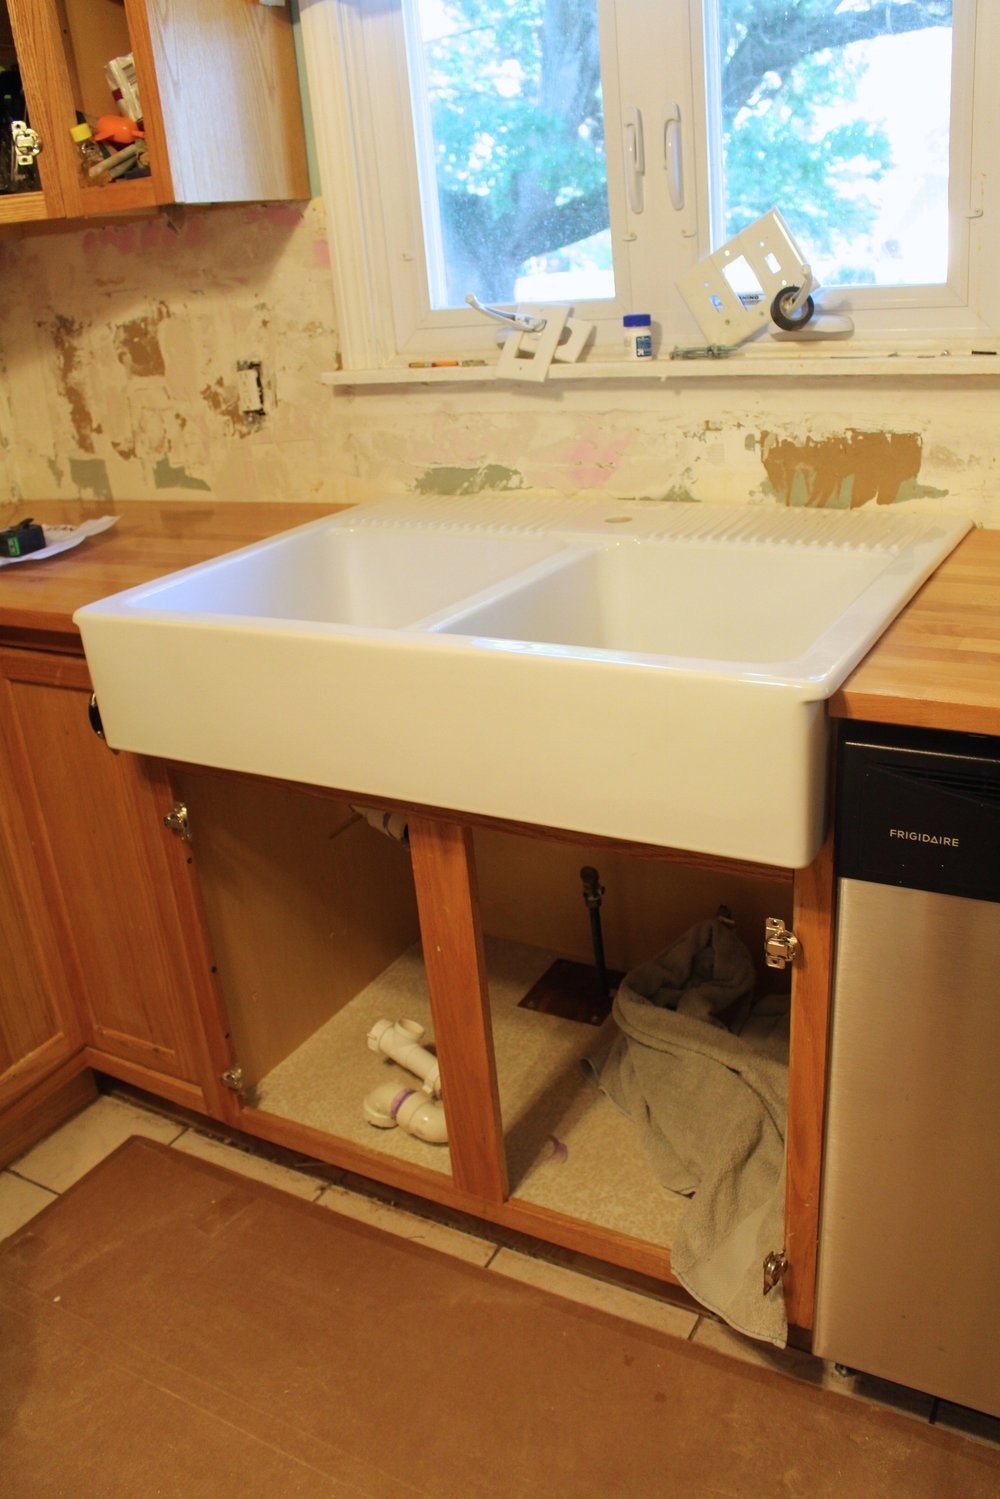 Domsjo ikea farmhouse sink